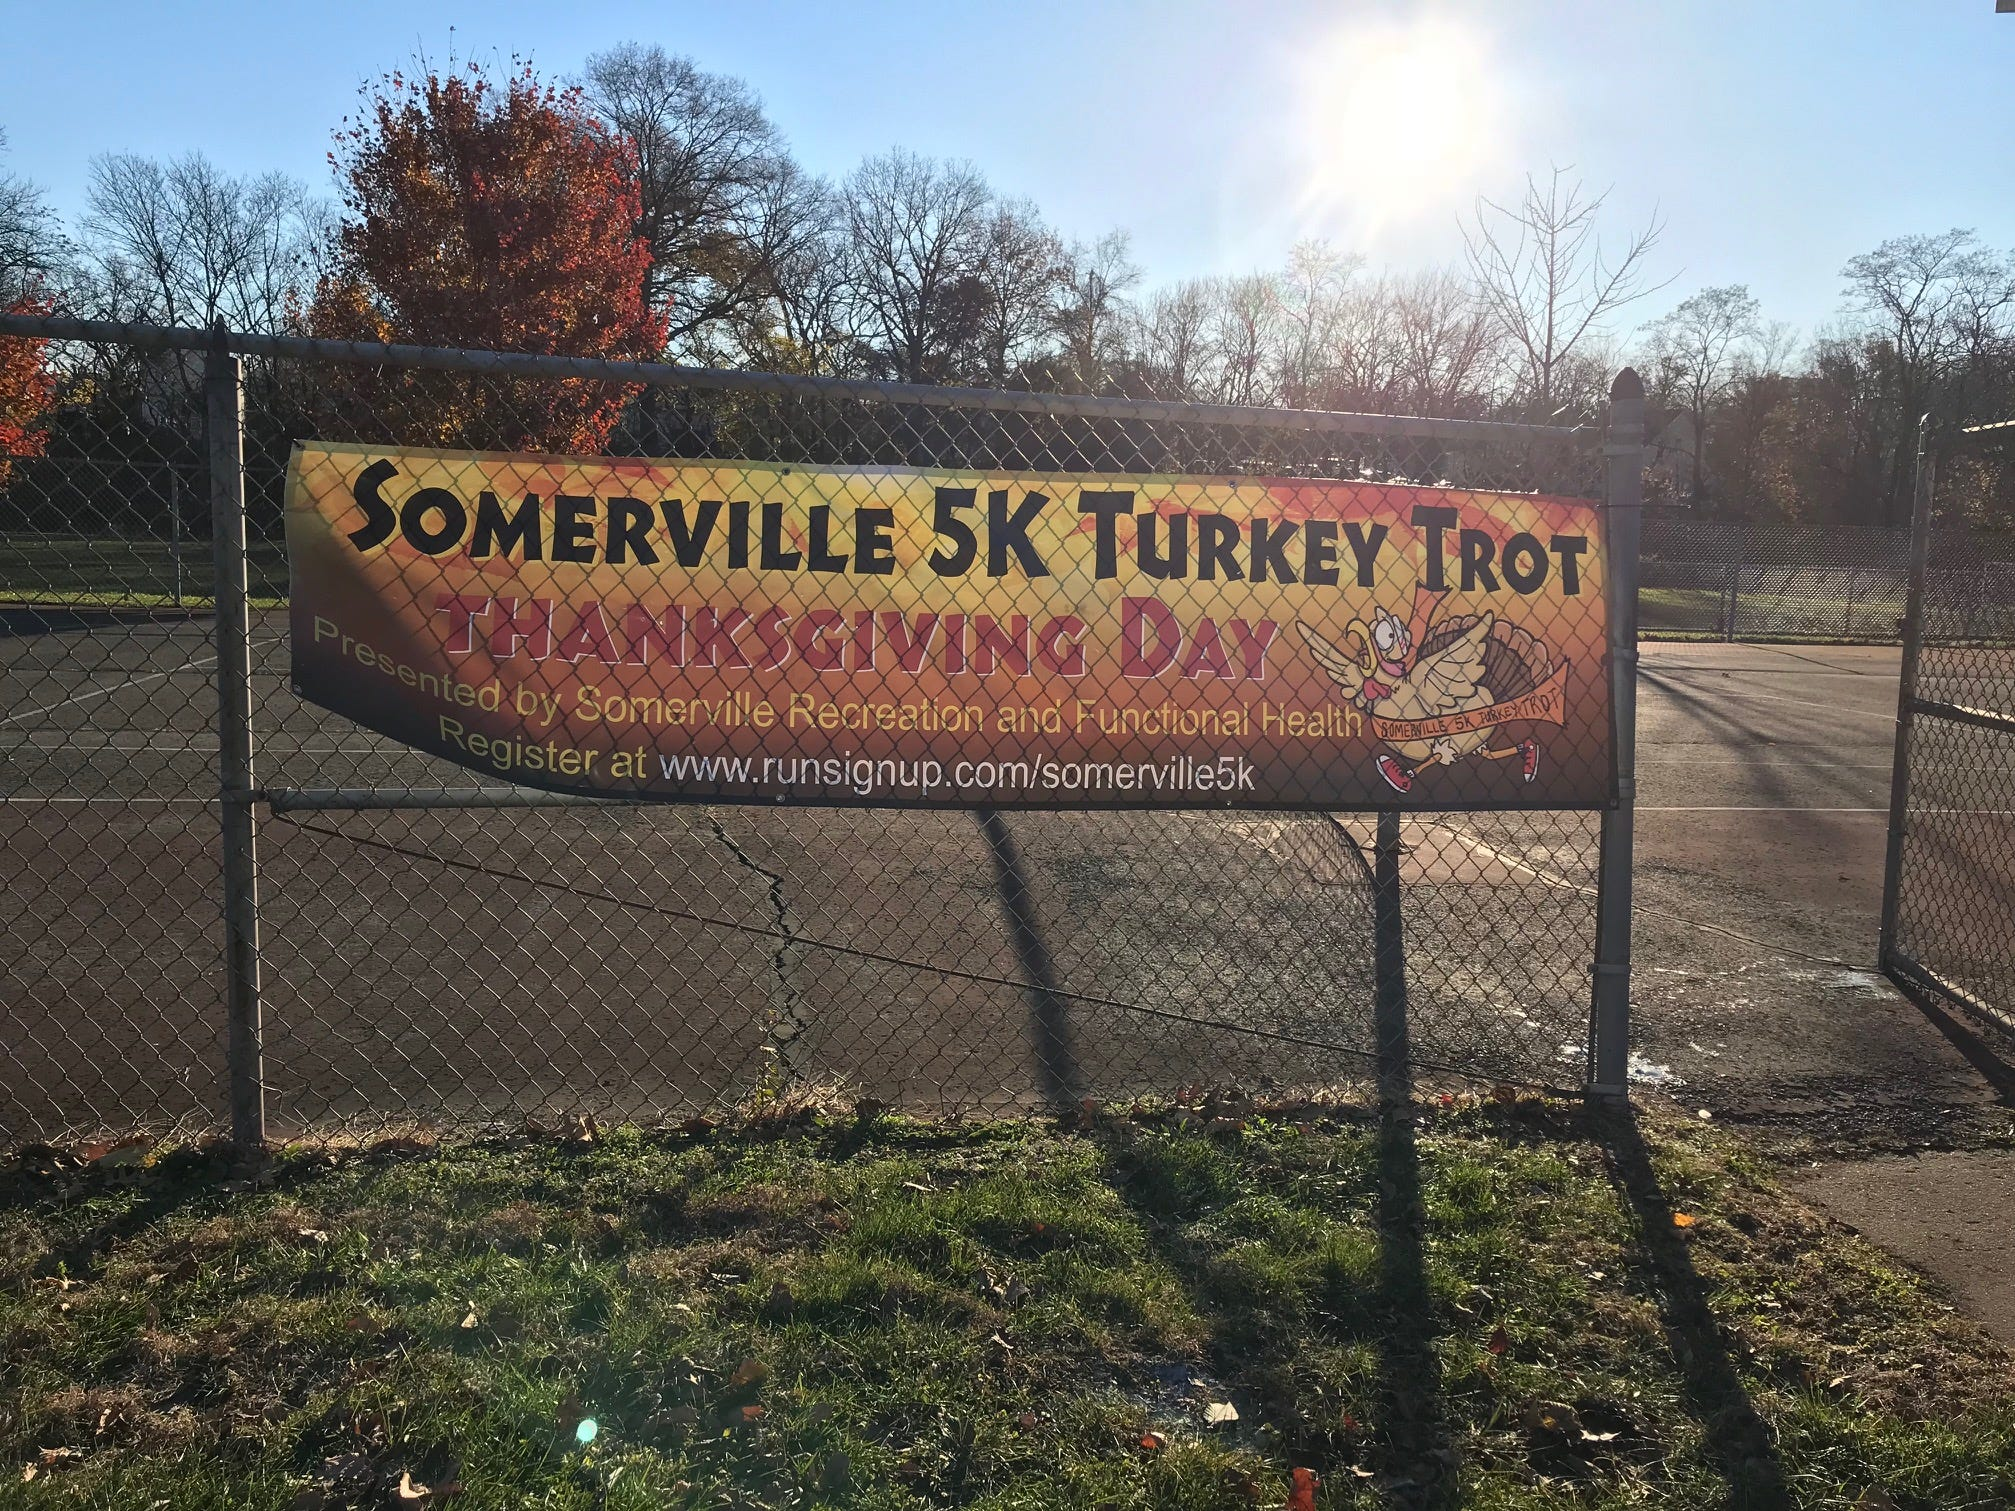 The sign for the Somerville 5K Turkey Trot on Thanksgiving Day